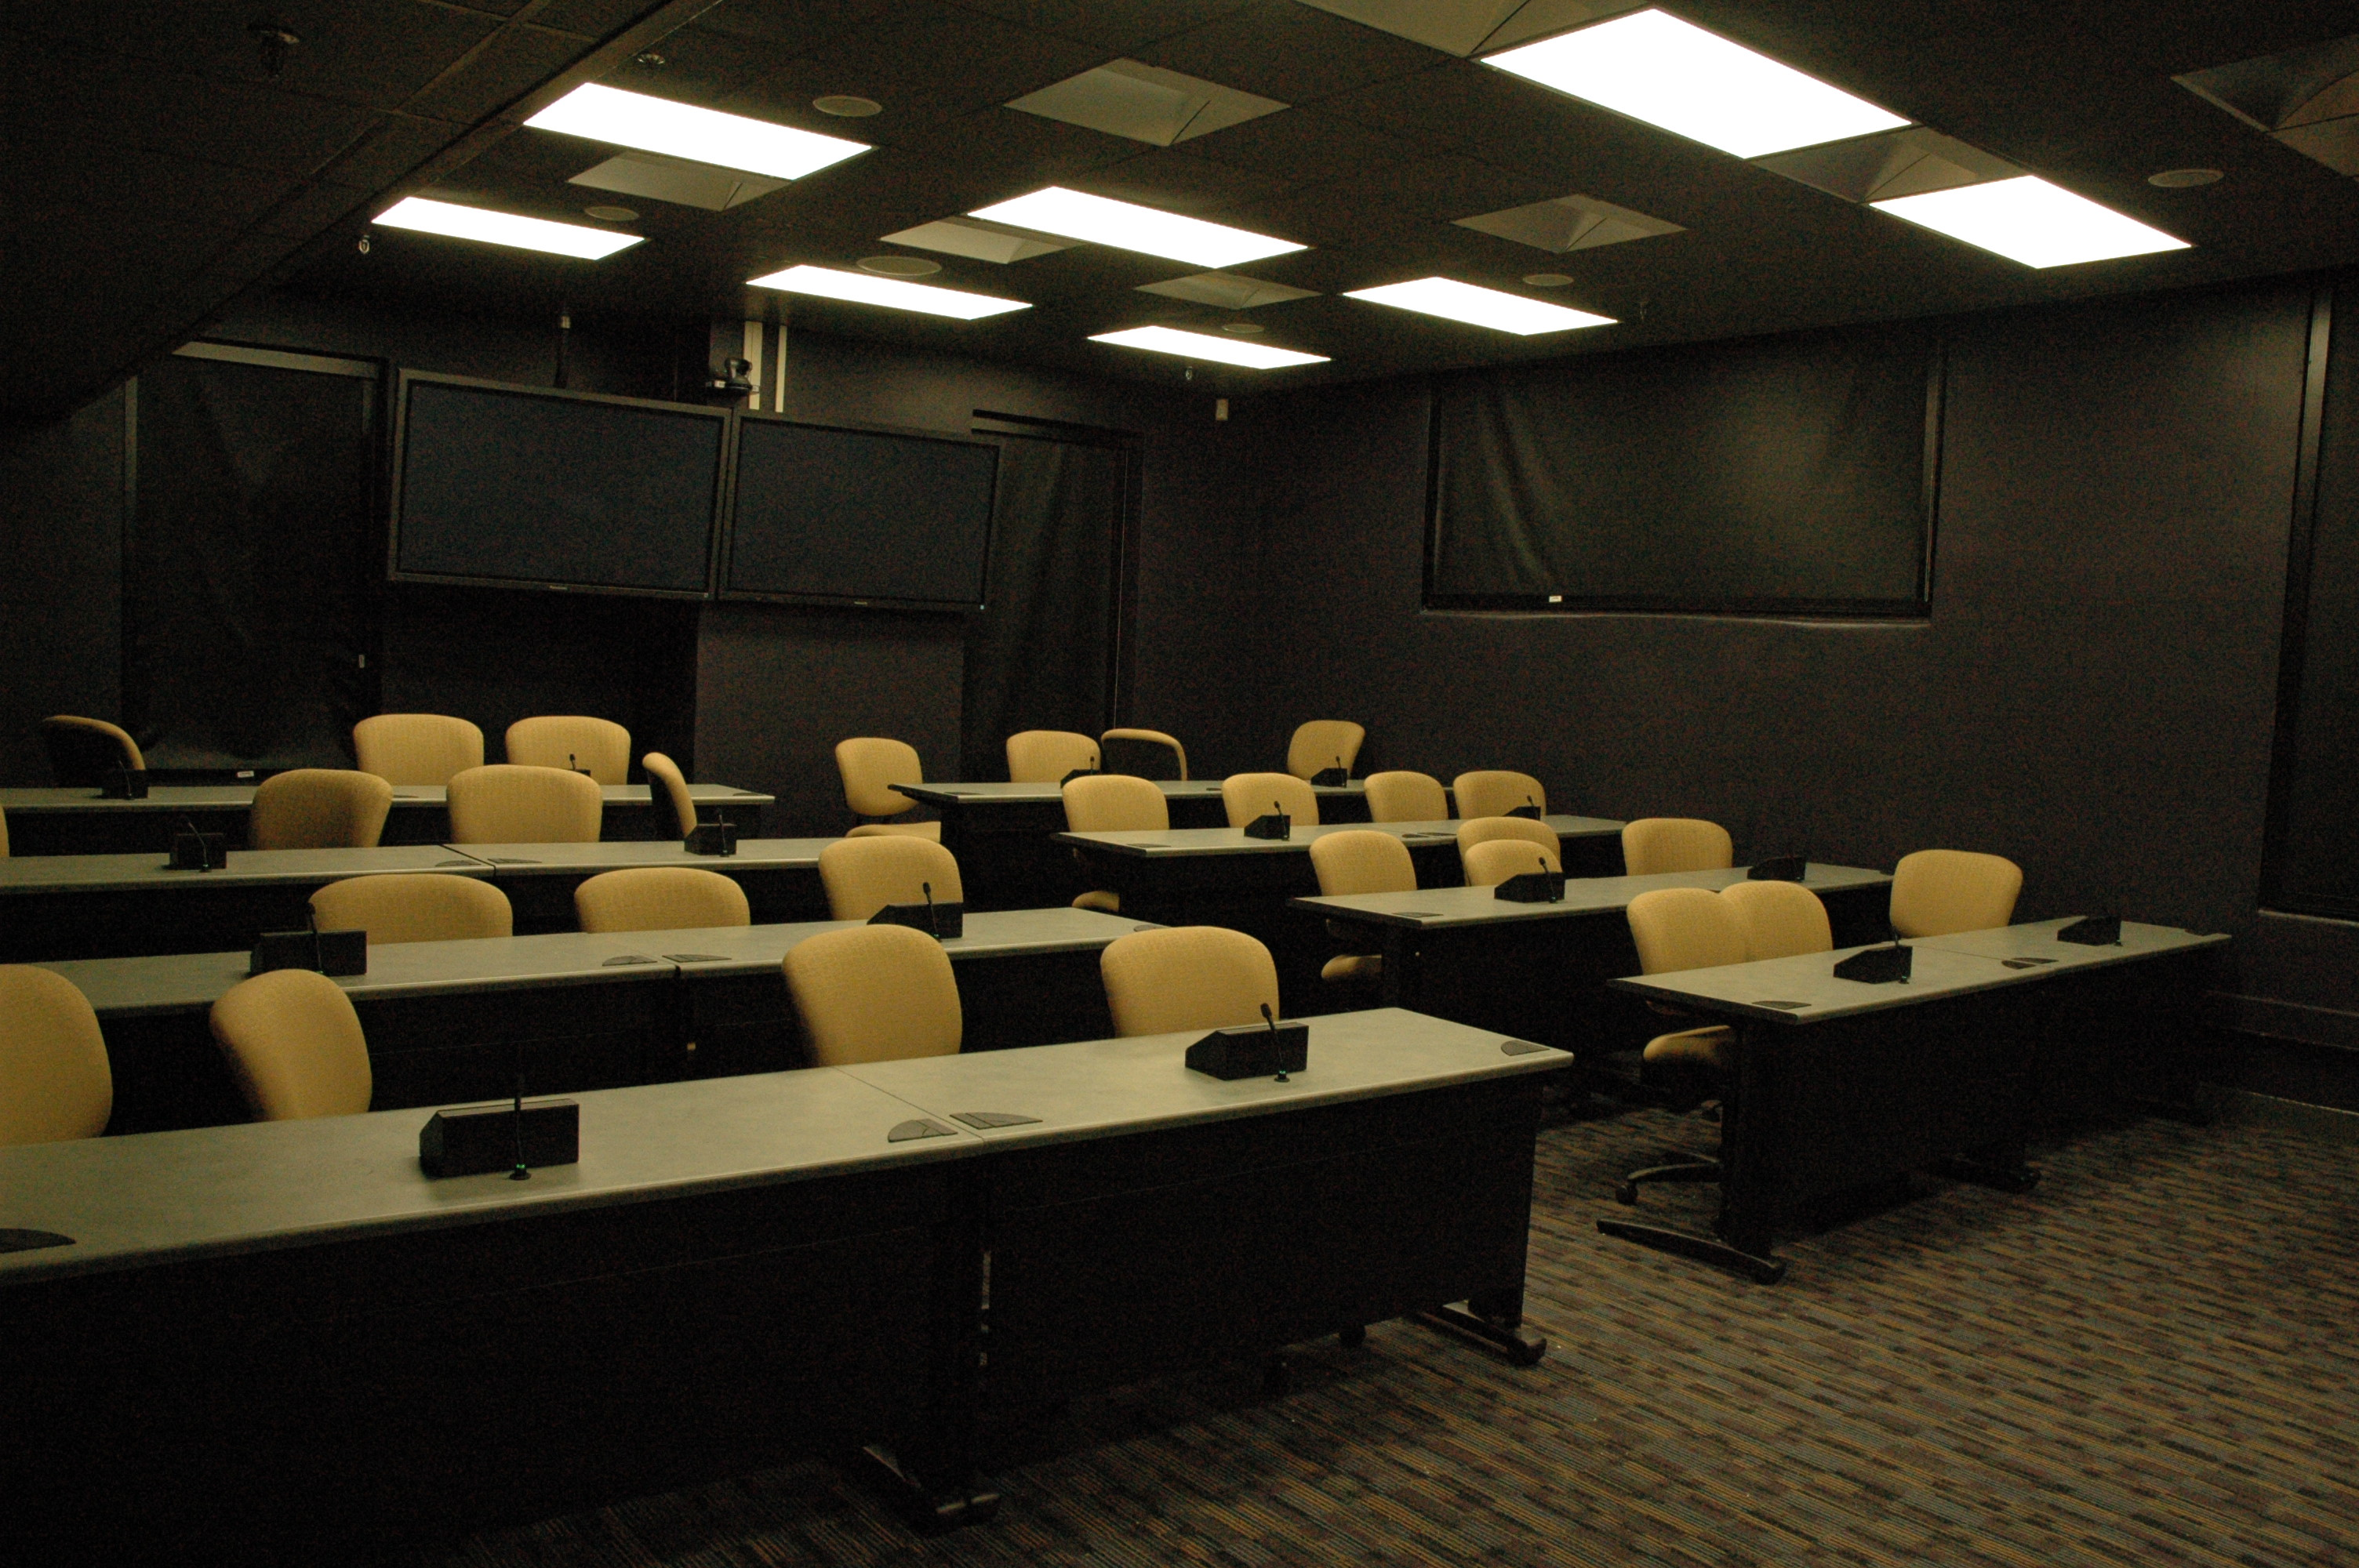 View 1 of Video conference room, Coates 202.